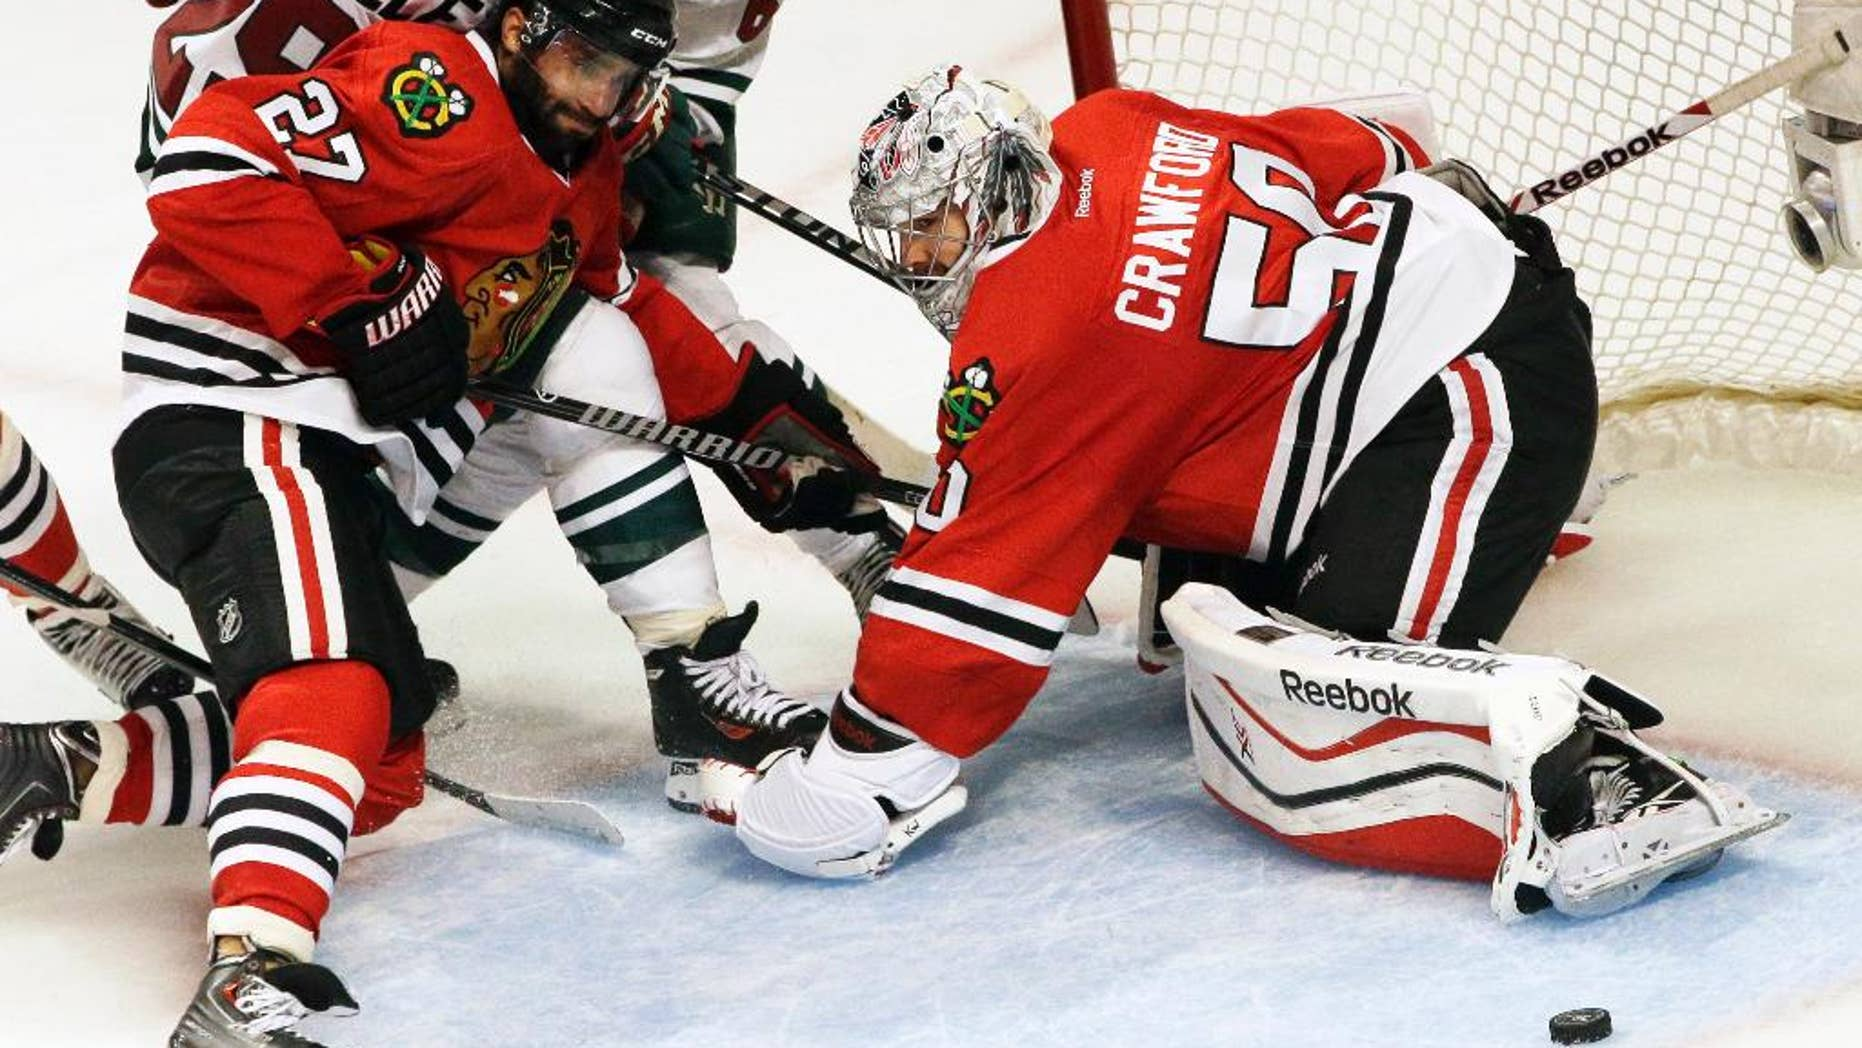 Chicago Blackhawks goalie Corey Crawford (50) blocks a shot as Johnny Oduya (27) battles for the puck against Minnesota Wild's Jason Pominville (29) and Mikael Granlund (64) during the third period in Game 5 of an NHL hockey second-round playoff series in Chicago, Sunday, May 11, 2014. The Blackhawks won 2-1. (AP Photo/Nam Y. Huh)